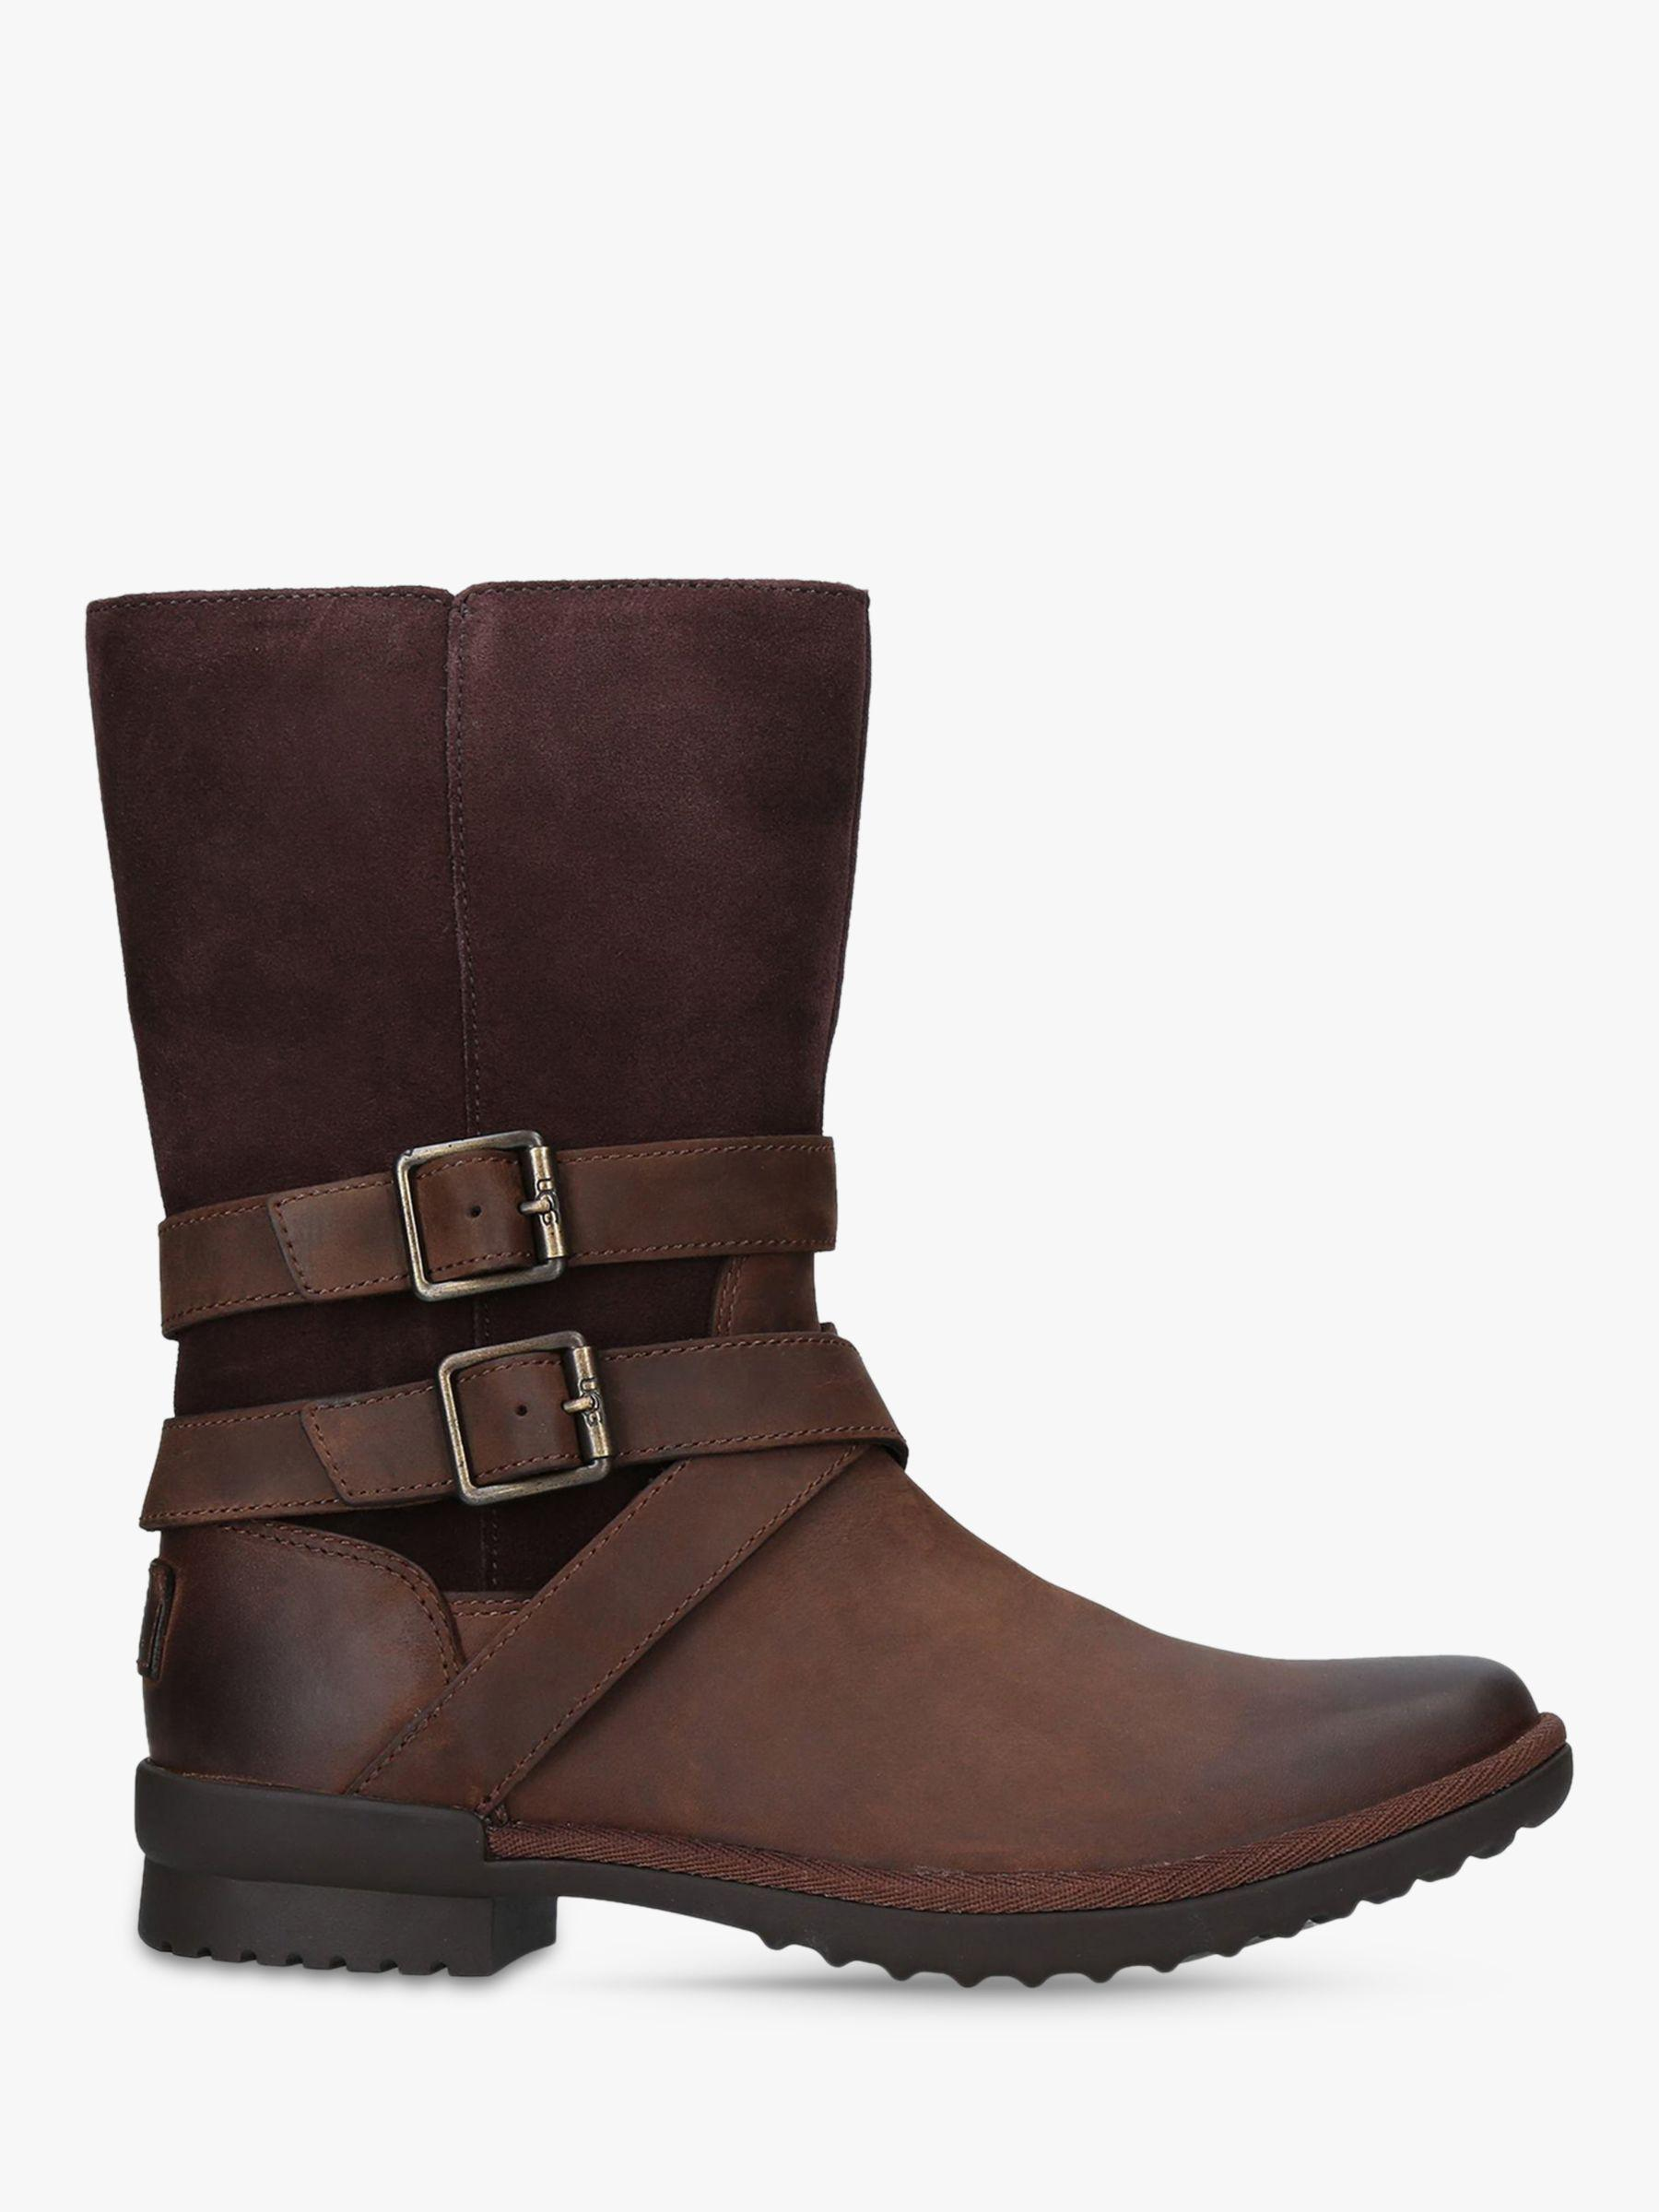 3918c94149c Ugg Brown Lorna Buckle Ankle Boots